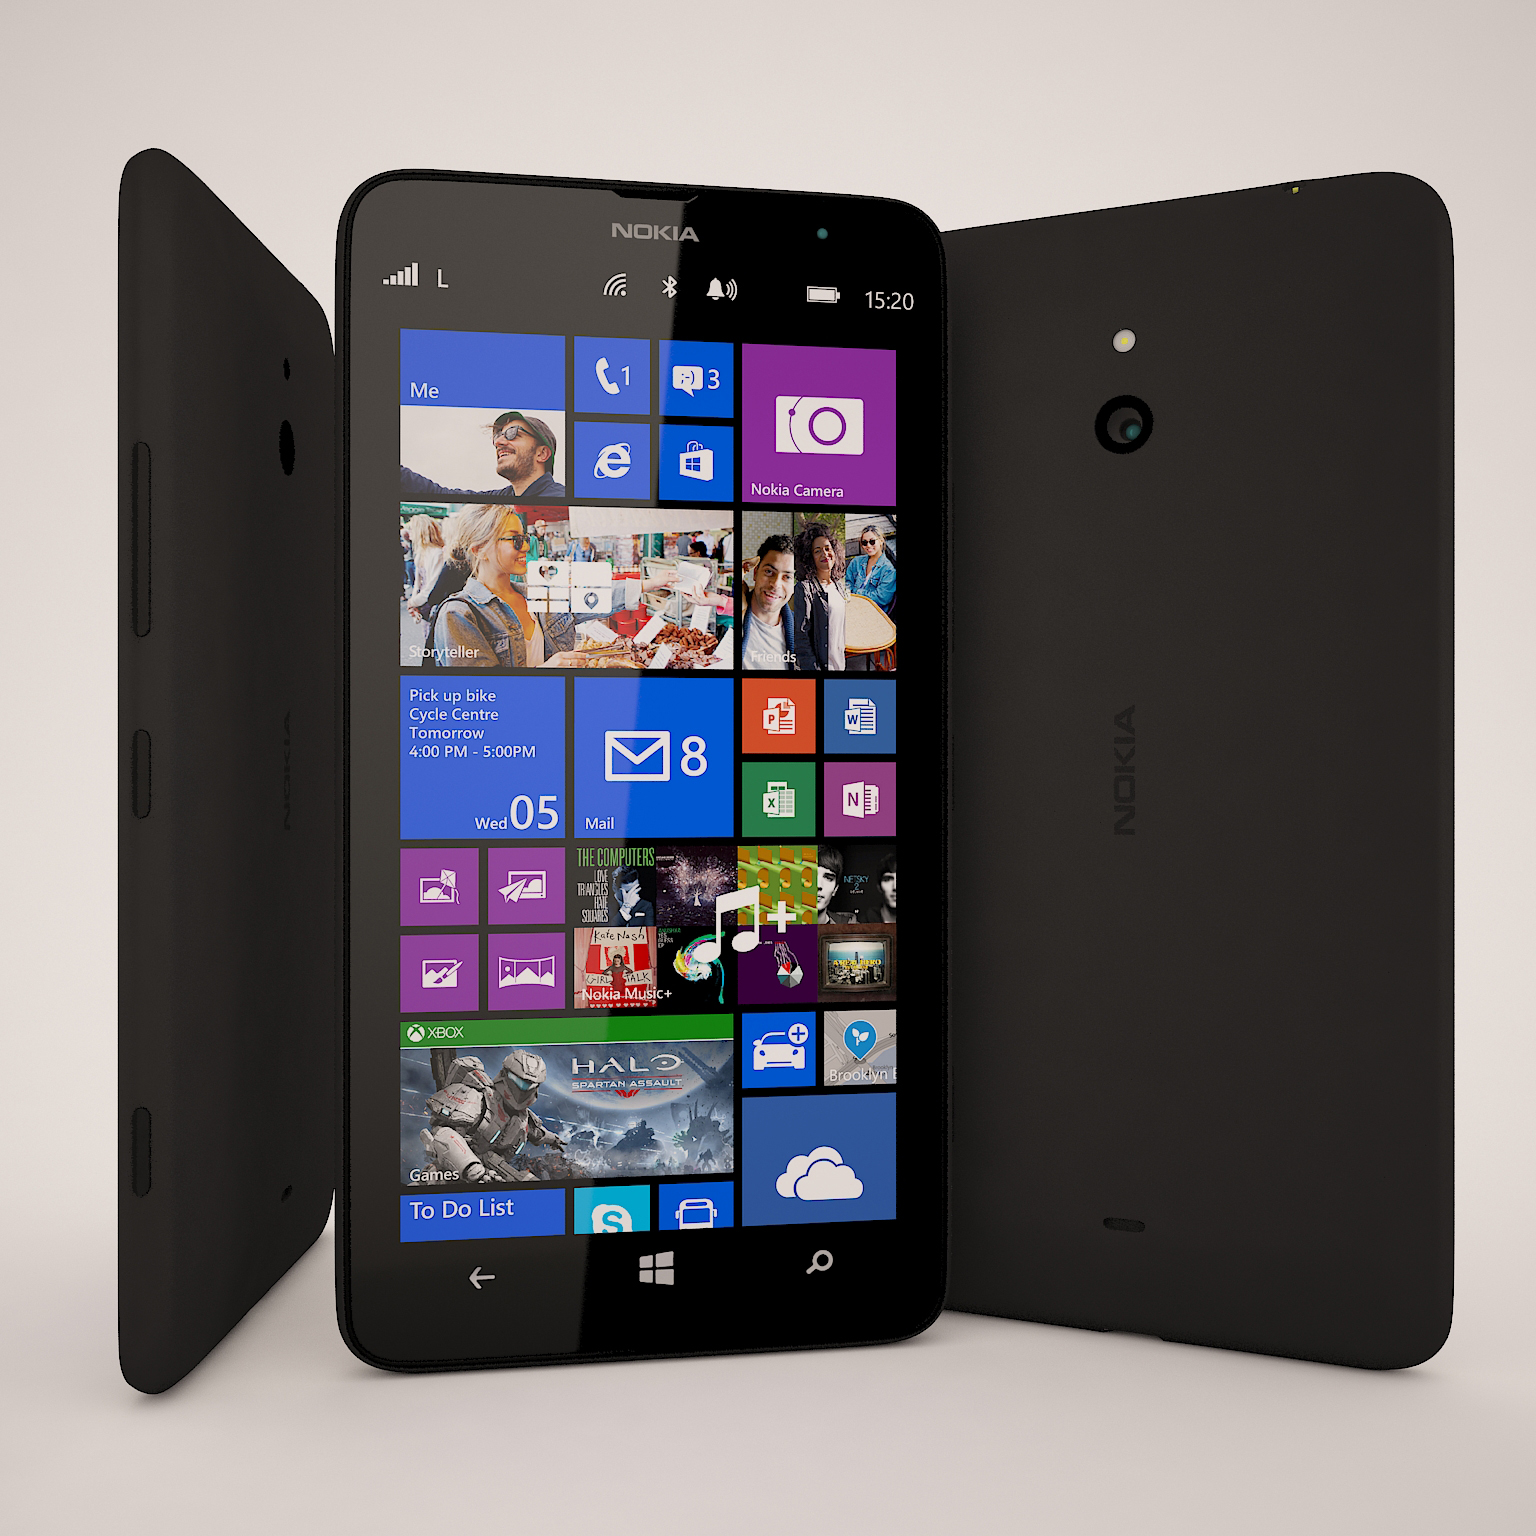 Nokia lumia 1320 4g lte windows phone 8 black smartphone for Window 4g phone